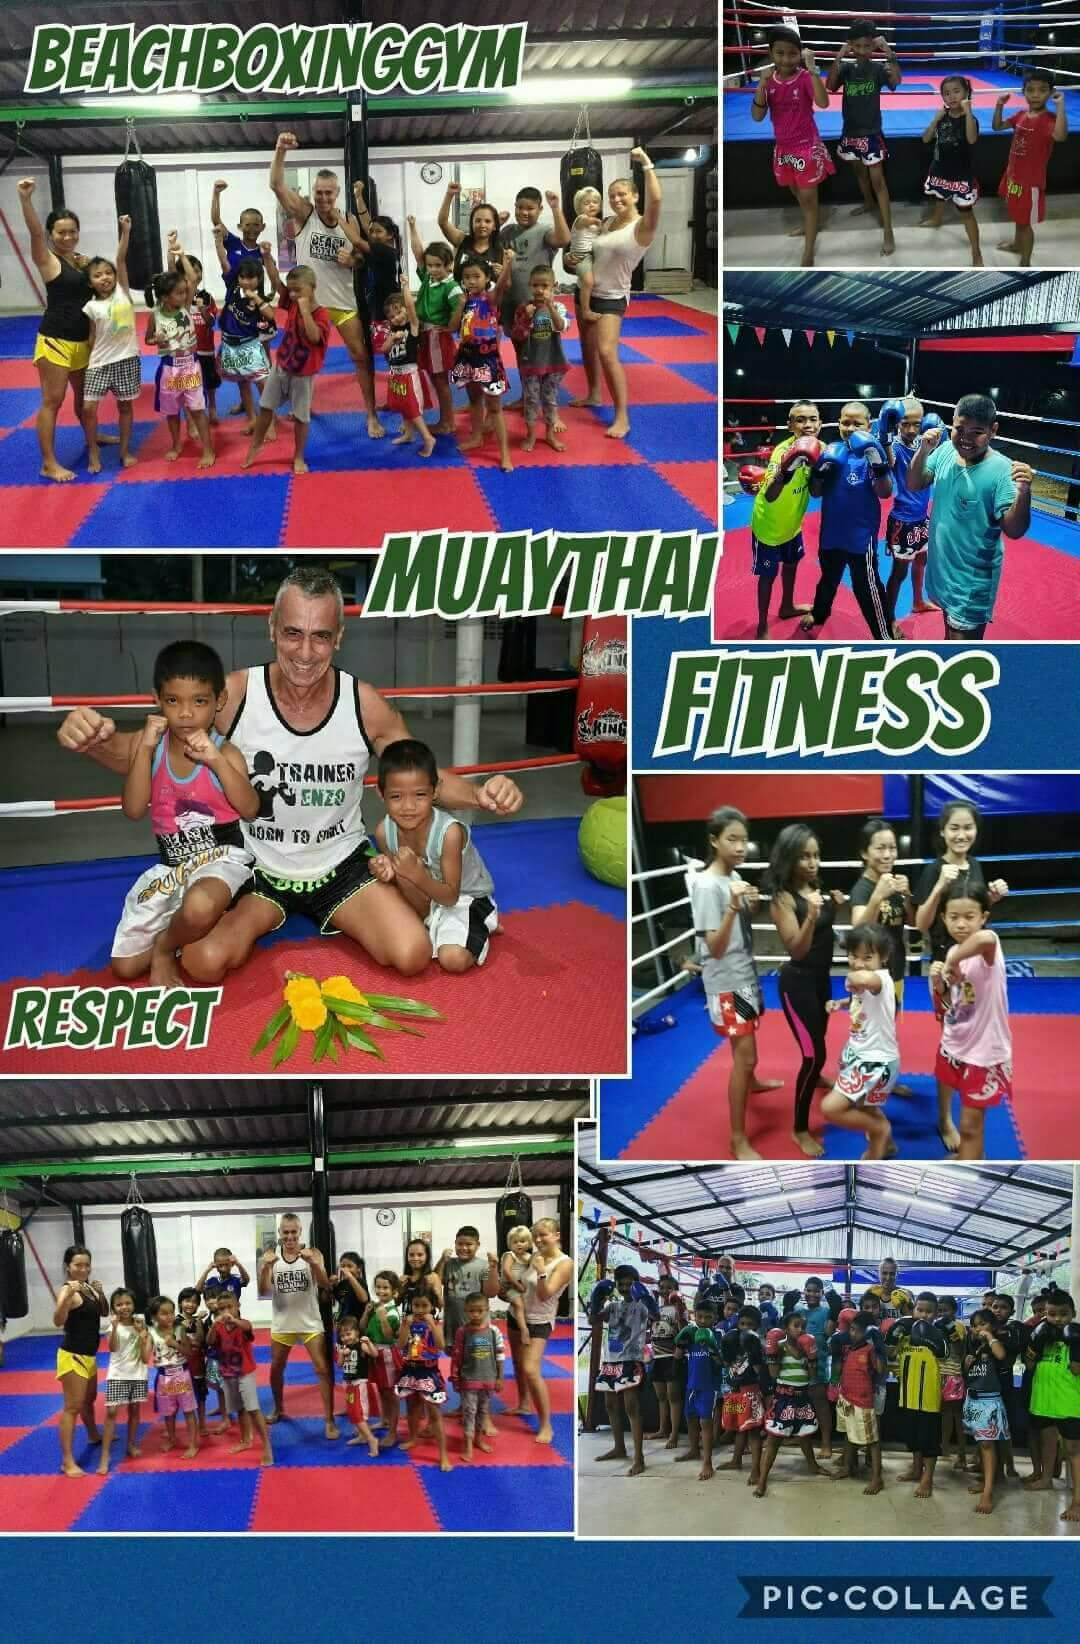 Muaythai Fitness Respect